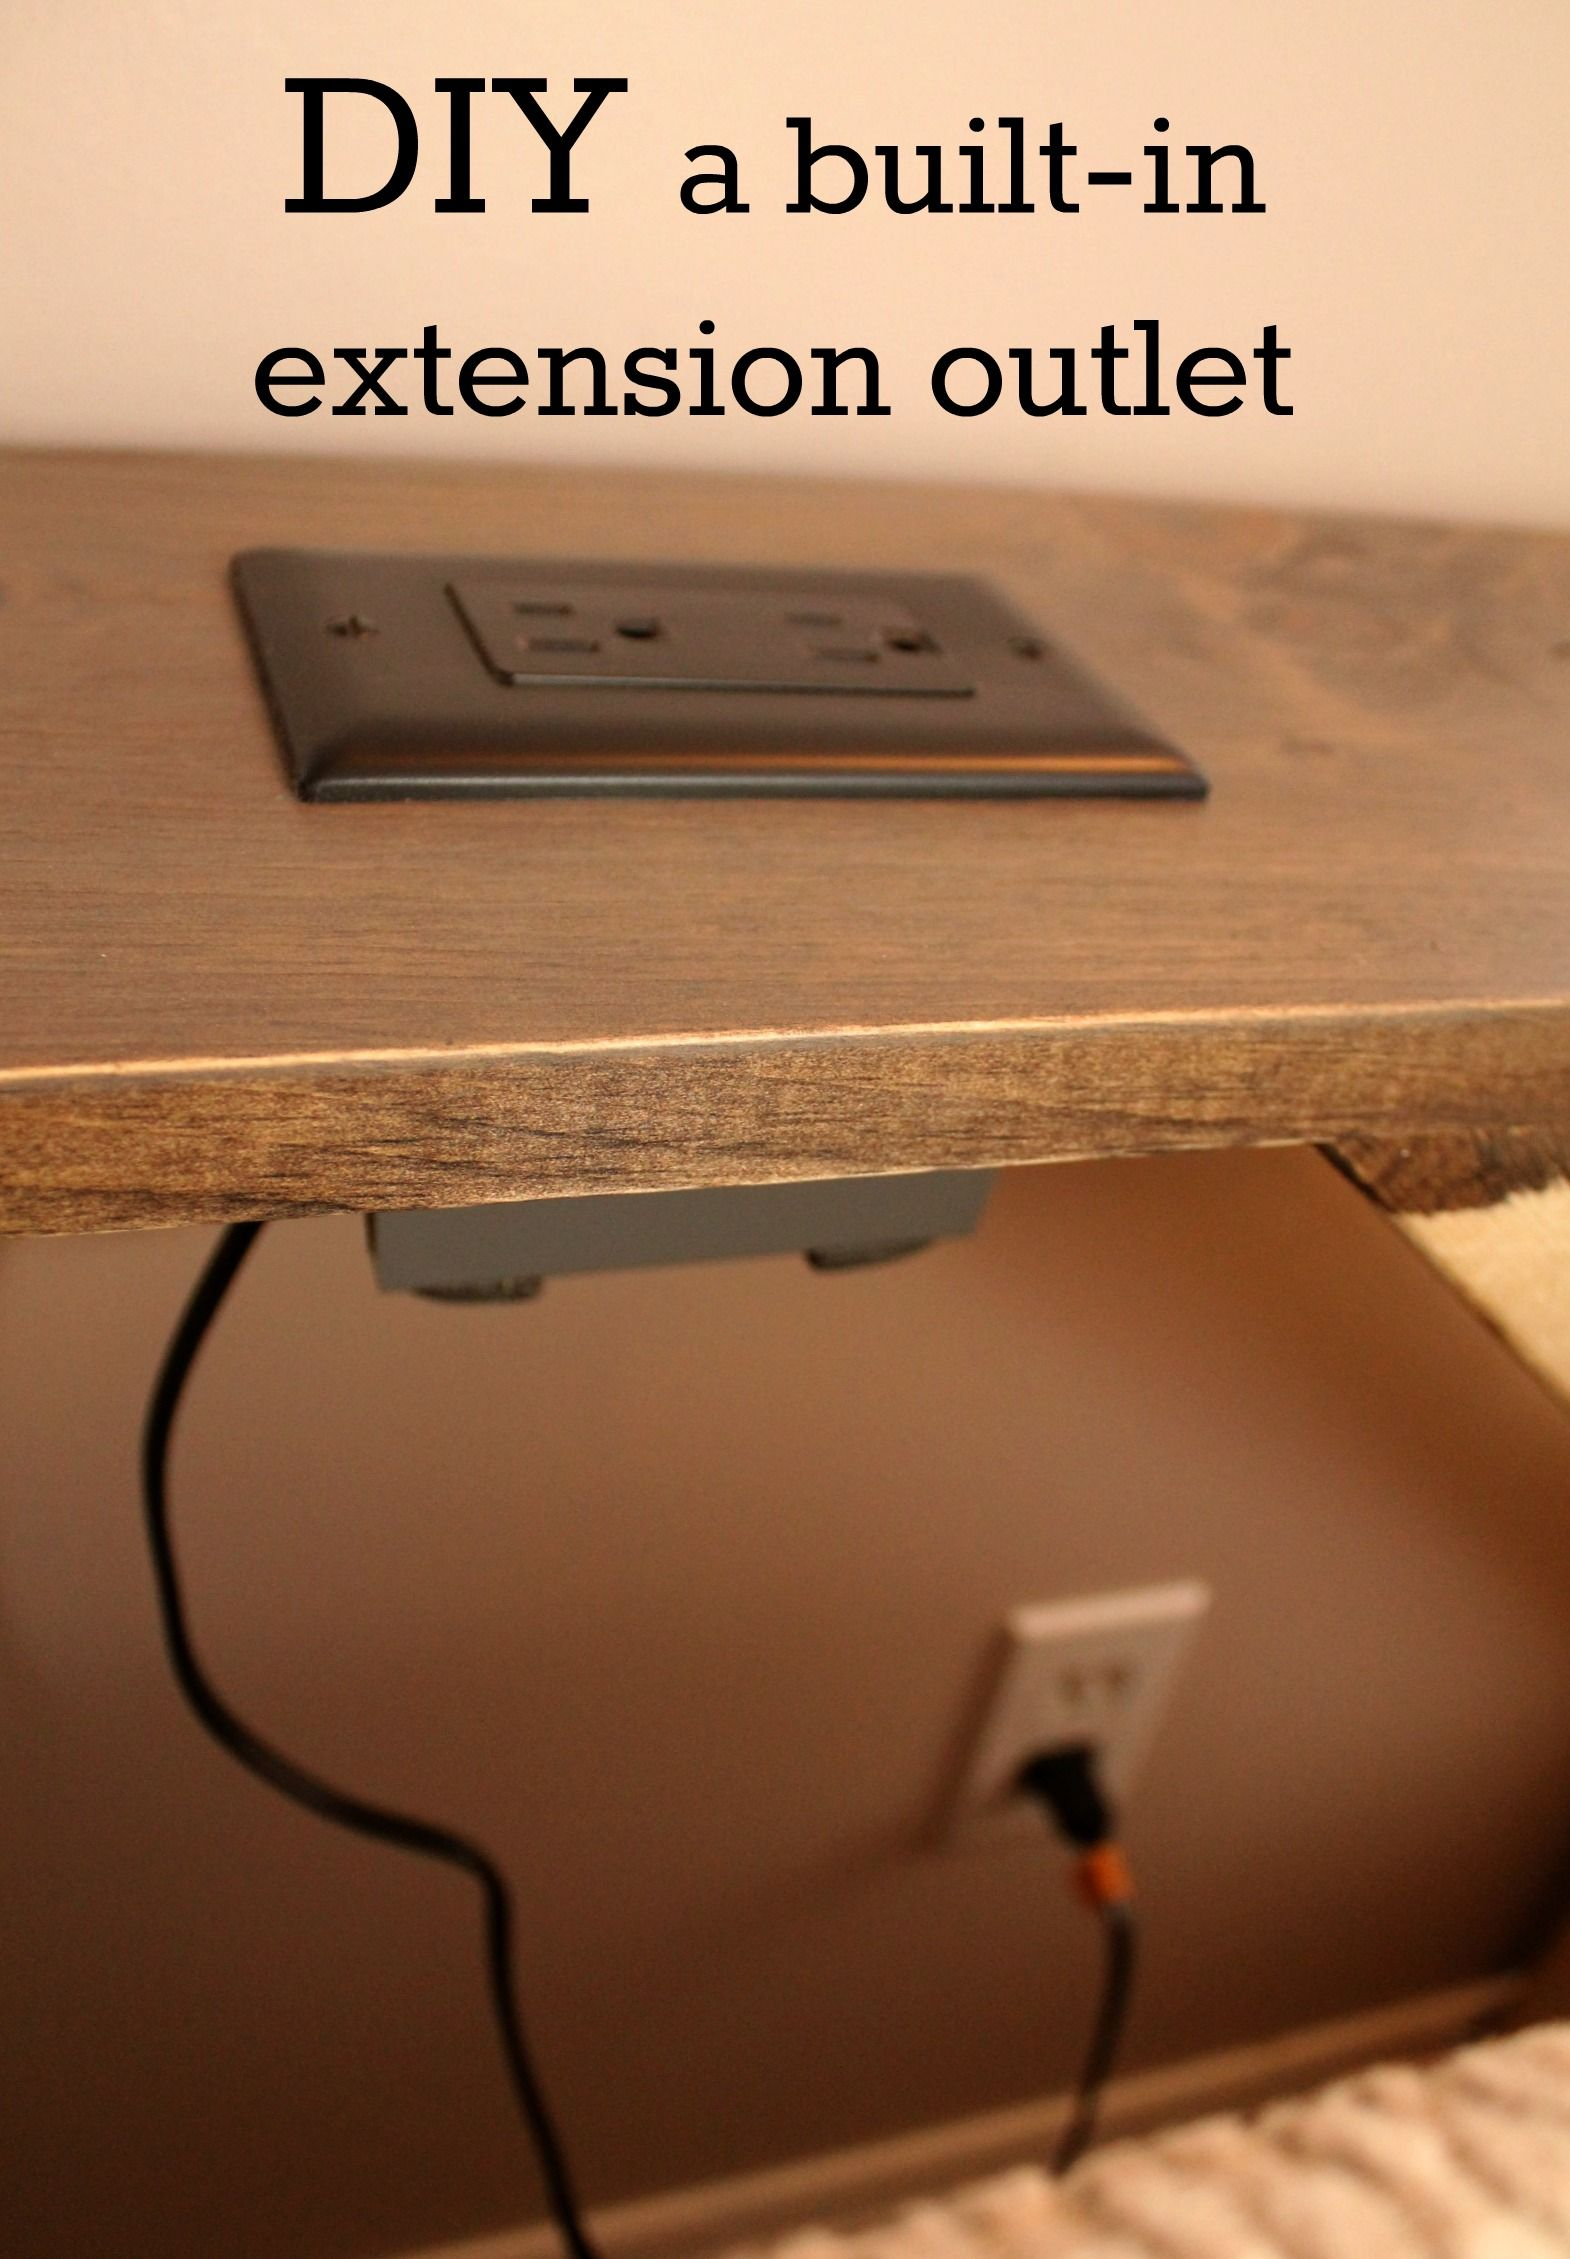 How to make a sofa table from 1 x 6 lumber - We Converted A Wall Outlet Into An Extension Outlet For Our Tv Room Sofa Table